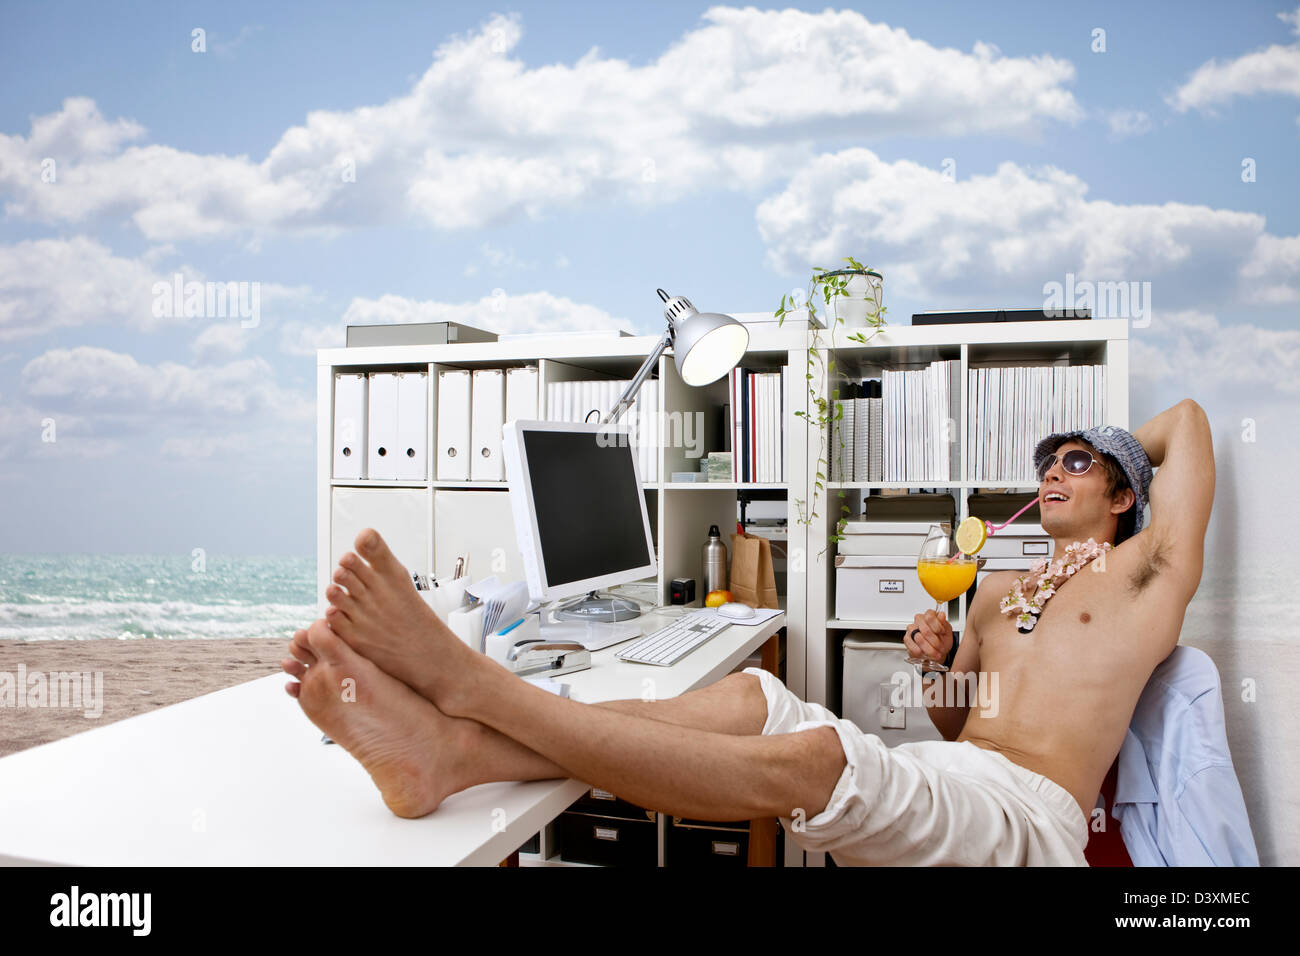 young man at work daydreaming about beach, cocktails, easy life - Stock Image